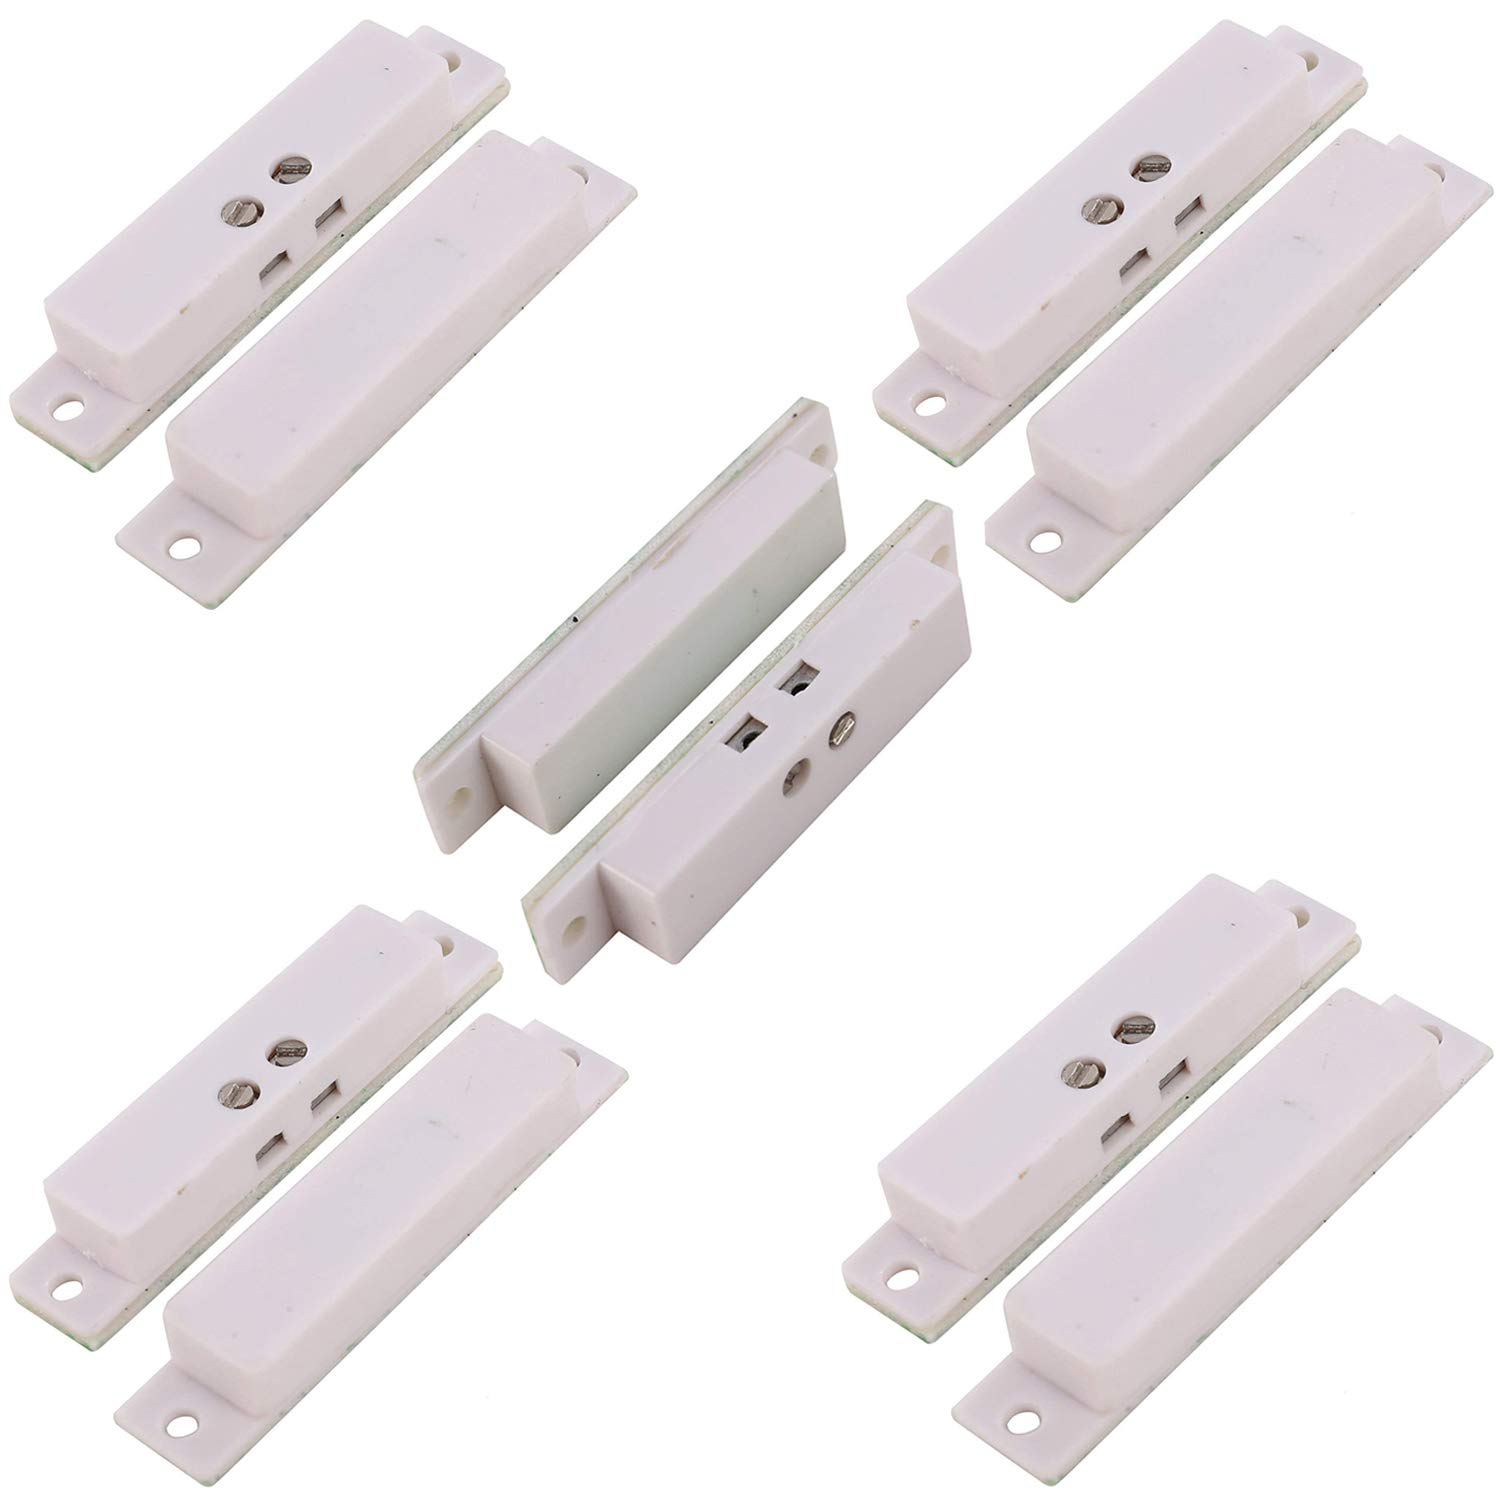 UHPPOTE NC Wired Magnetic Alarm Window Door Contact Sensor Detector Reed Switch White (Pack of 5)